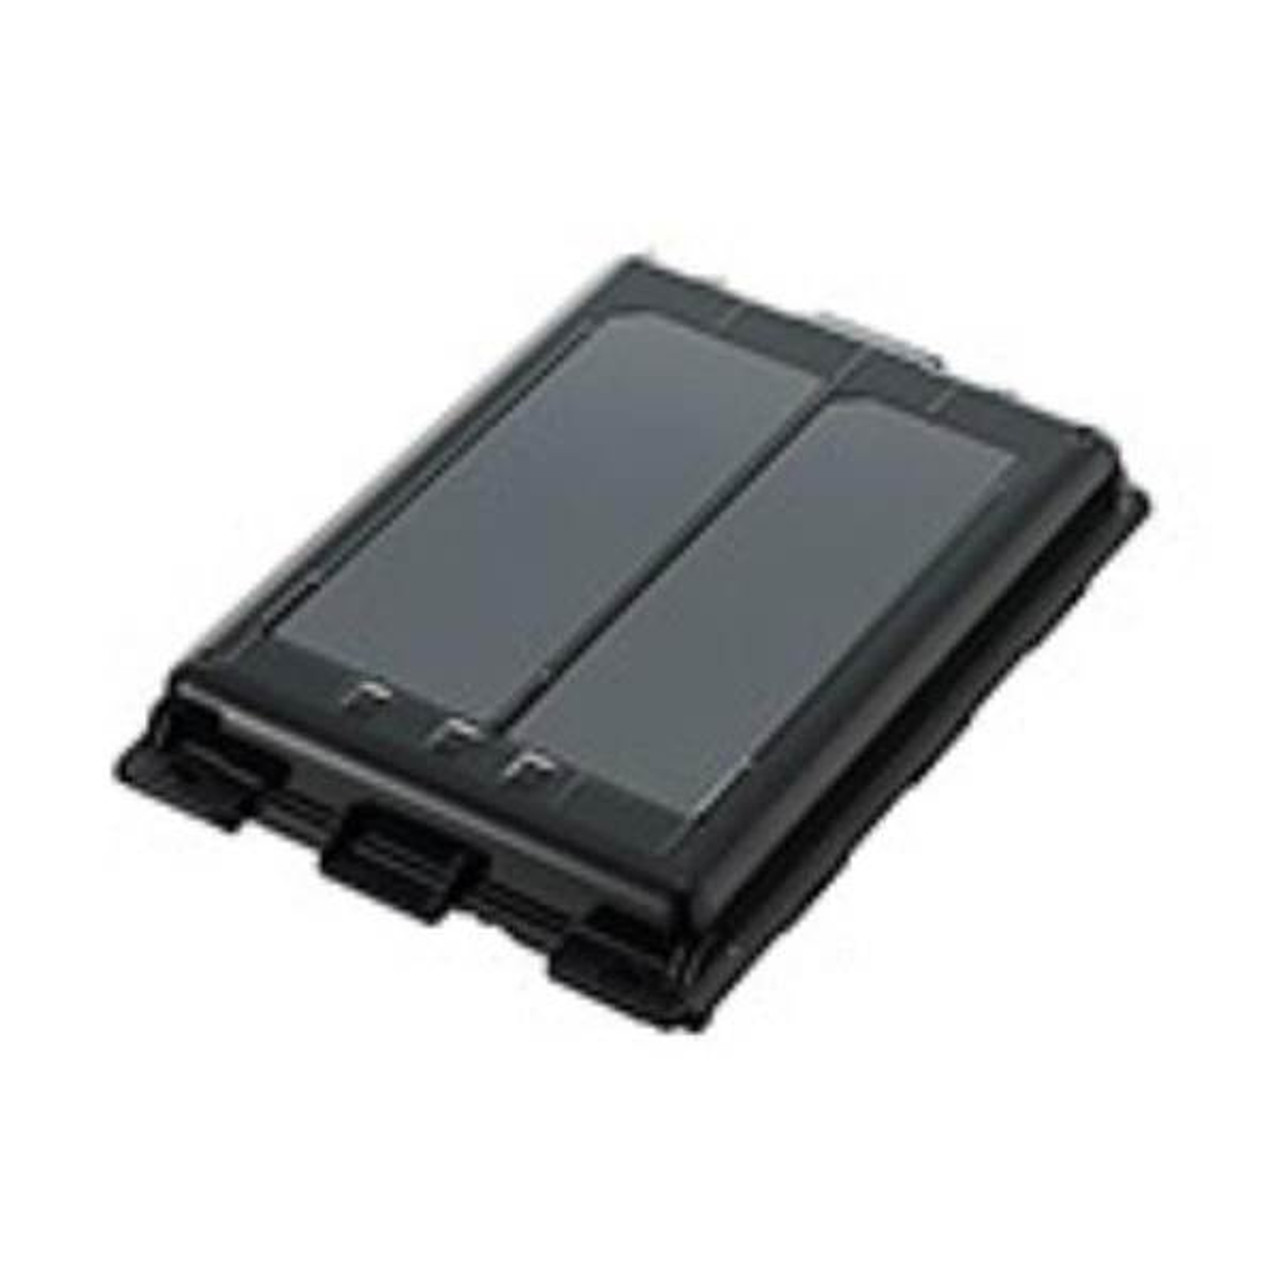 Image for Panasonic FZ-N1 Large Battery Pack CX Computer Superstore